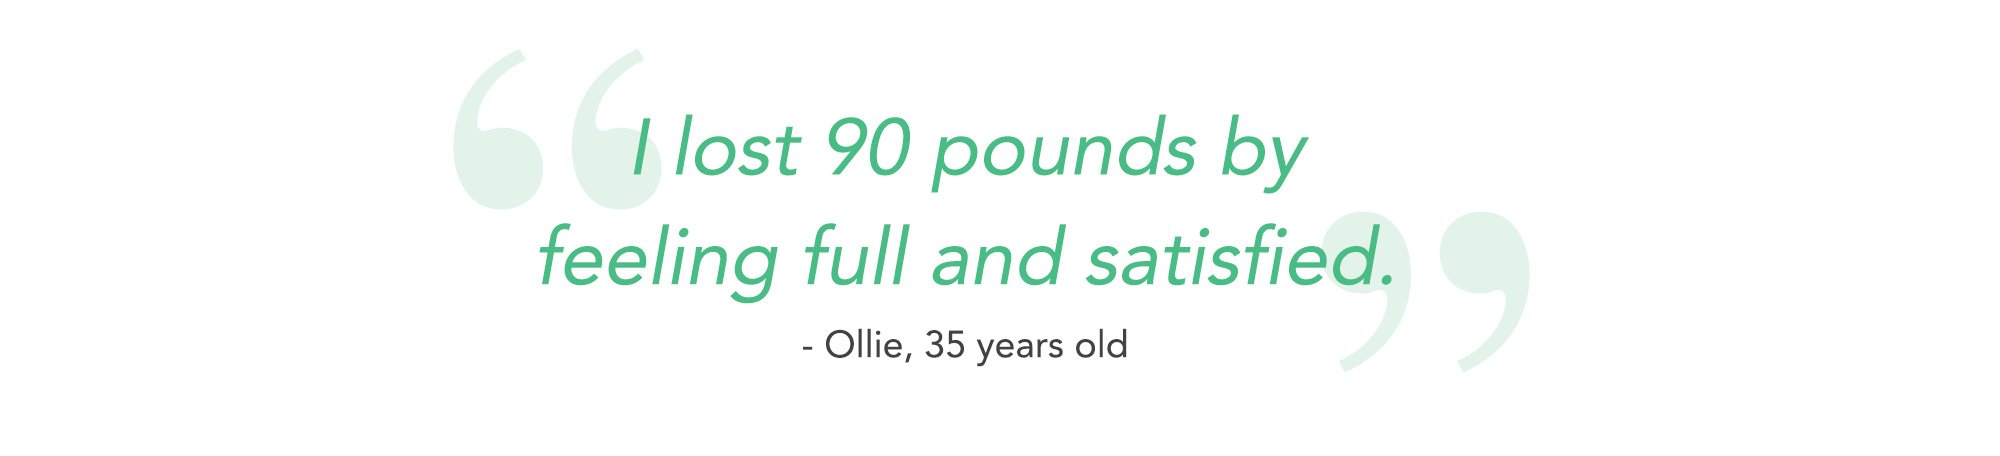 I lost 90 pounds by feeling full and satisfied. - Ollie, 35 years old